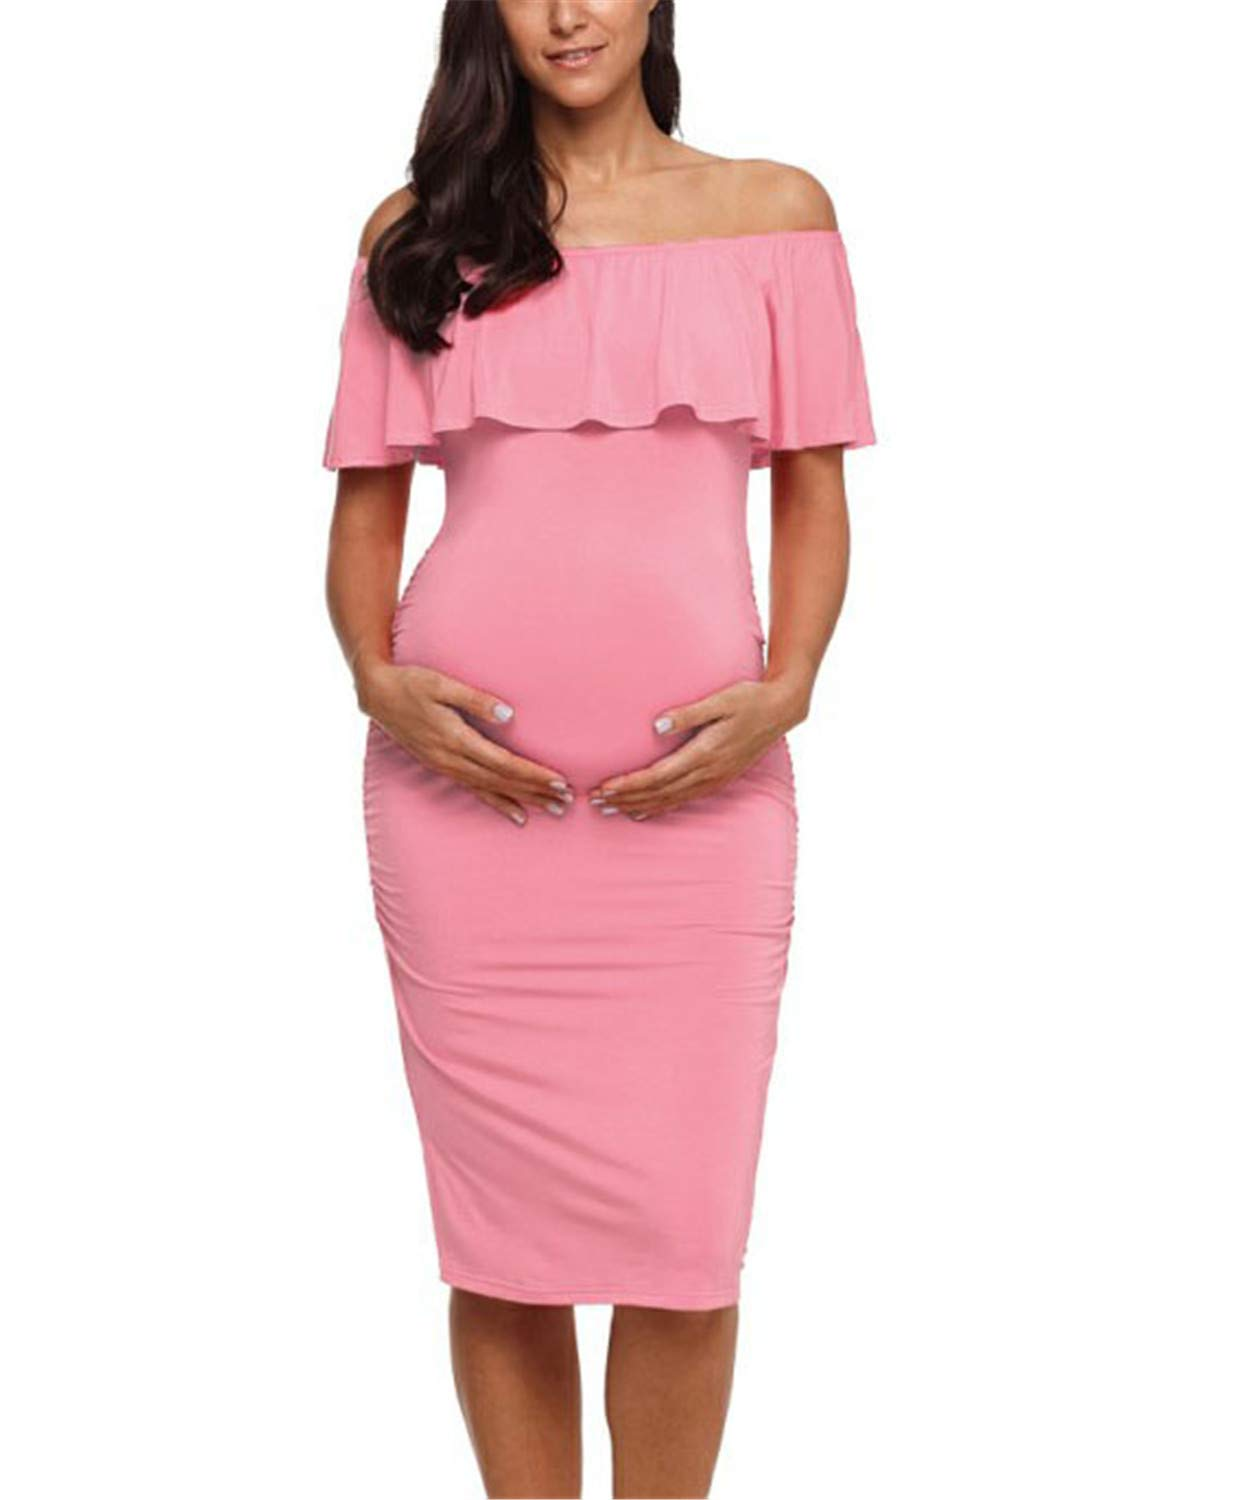 Womens Maternity Dresses Ruffle Off Shoulder Ruffles Pregnancy Ruched Sides Knee Length Bodycon Dresses